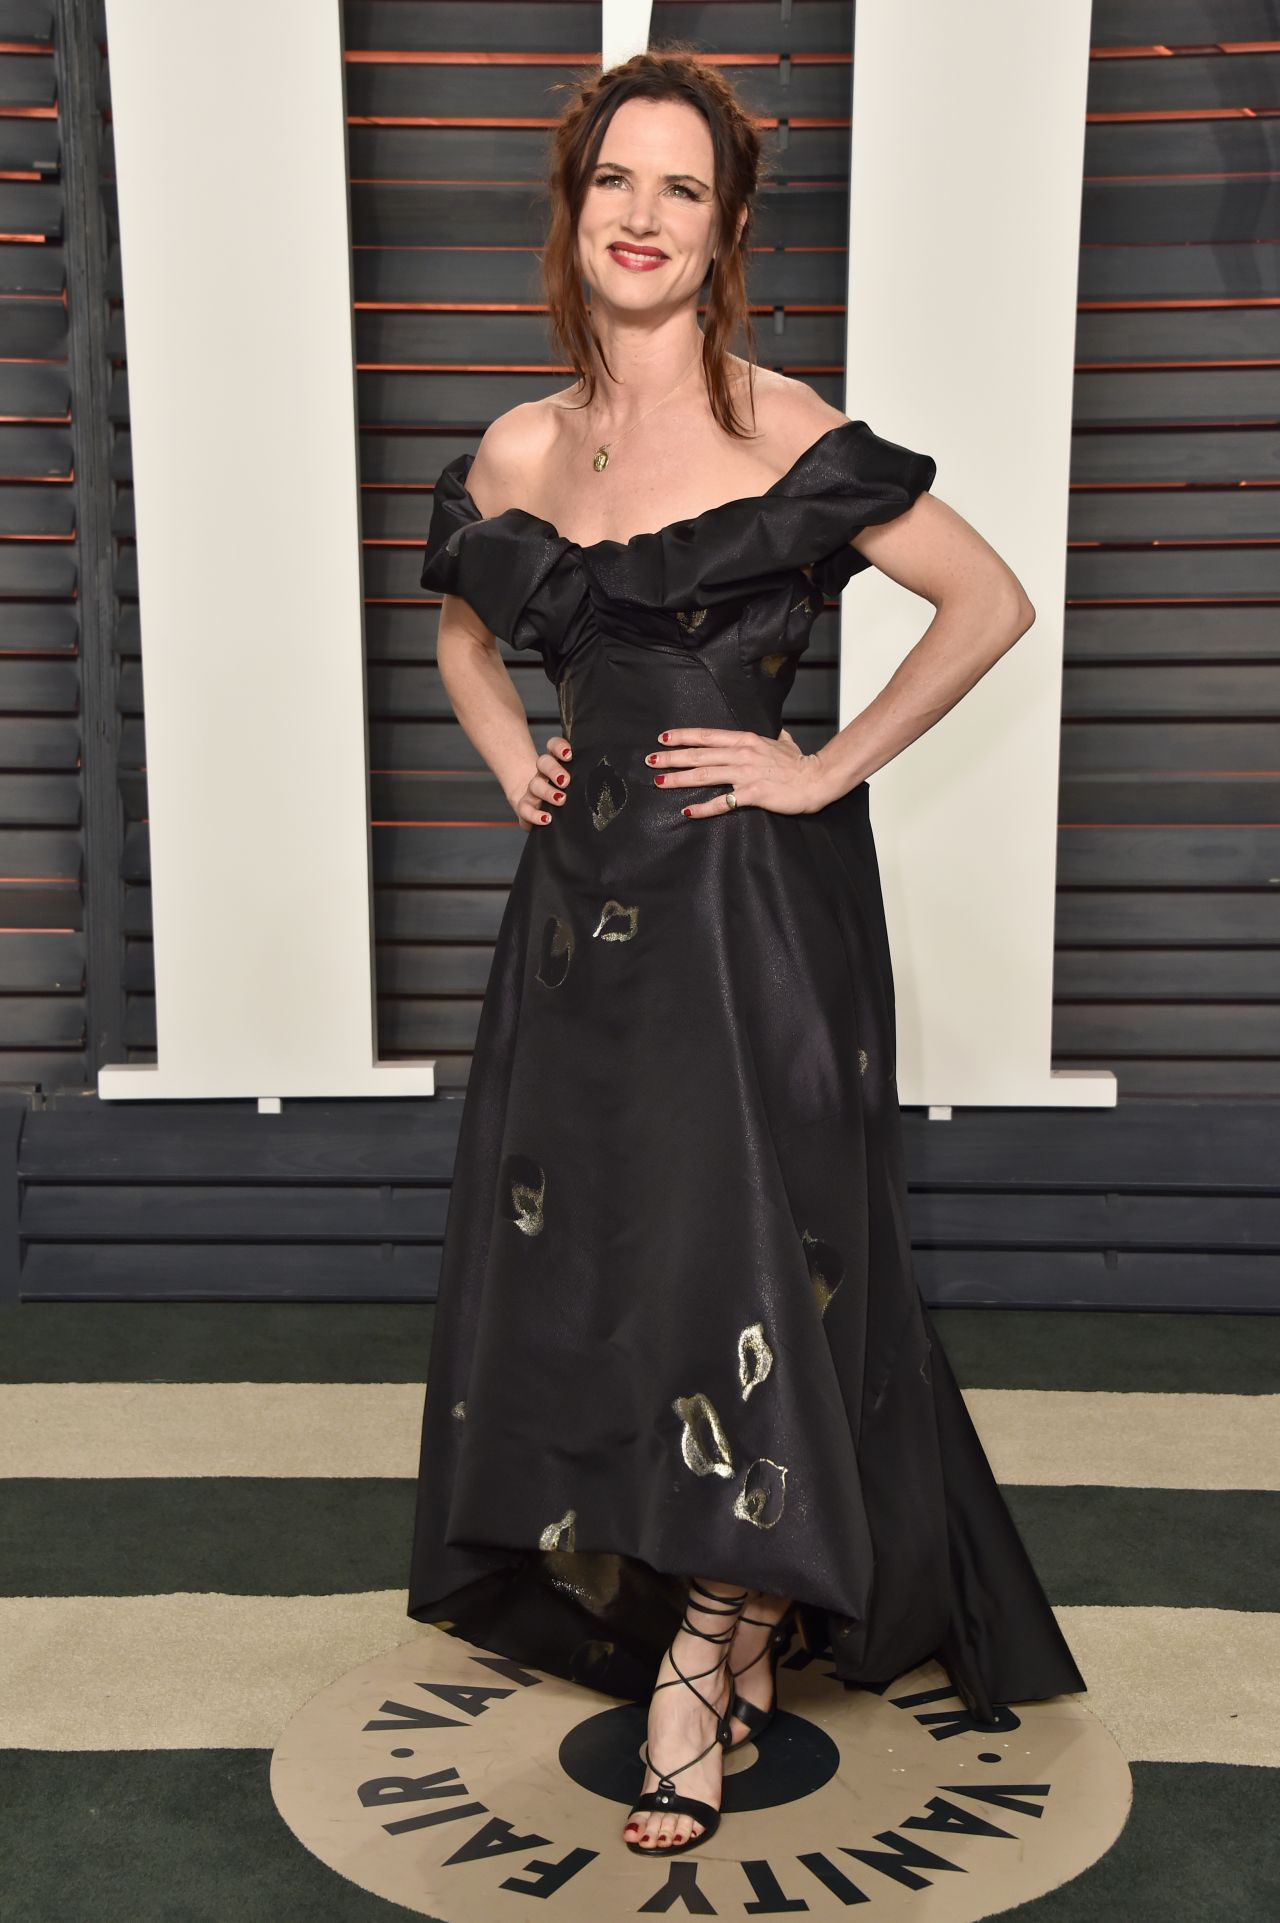 juliette-lewis-2016-vanity-fair-oscar-party-in-beverly-hills-ca-1